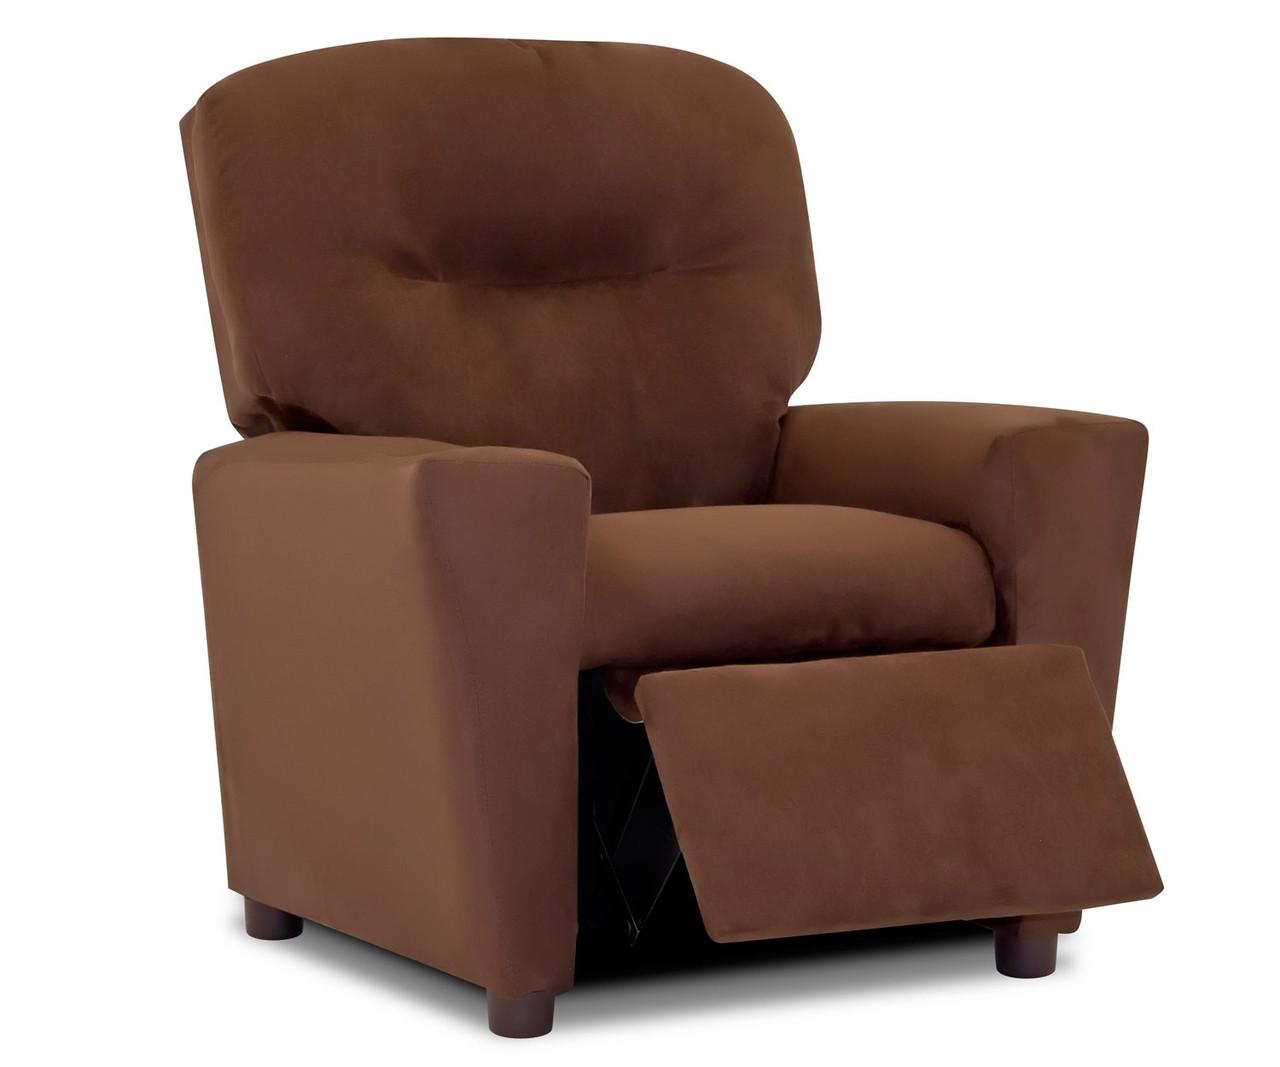 Kidz world designer recliner 1300 chs kidz world kids for K furniture fabric world